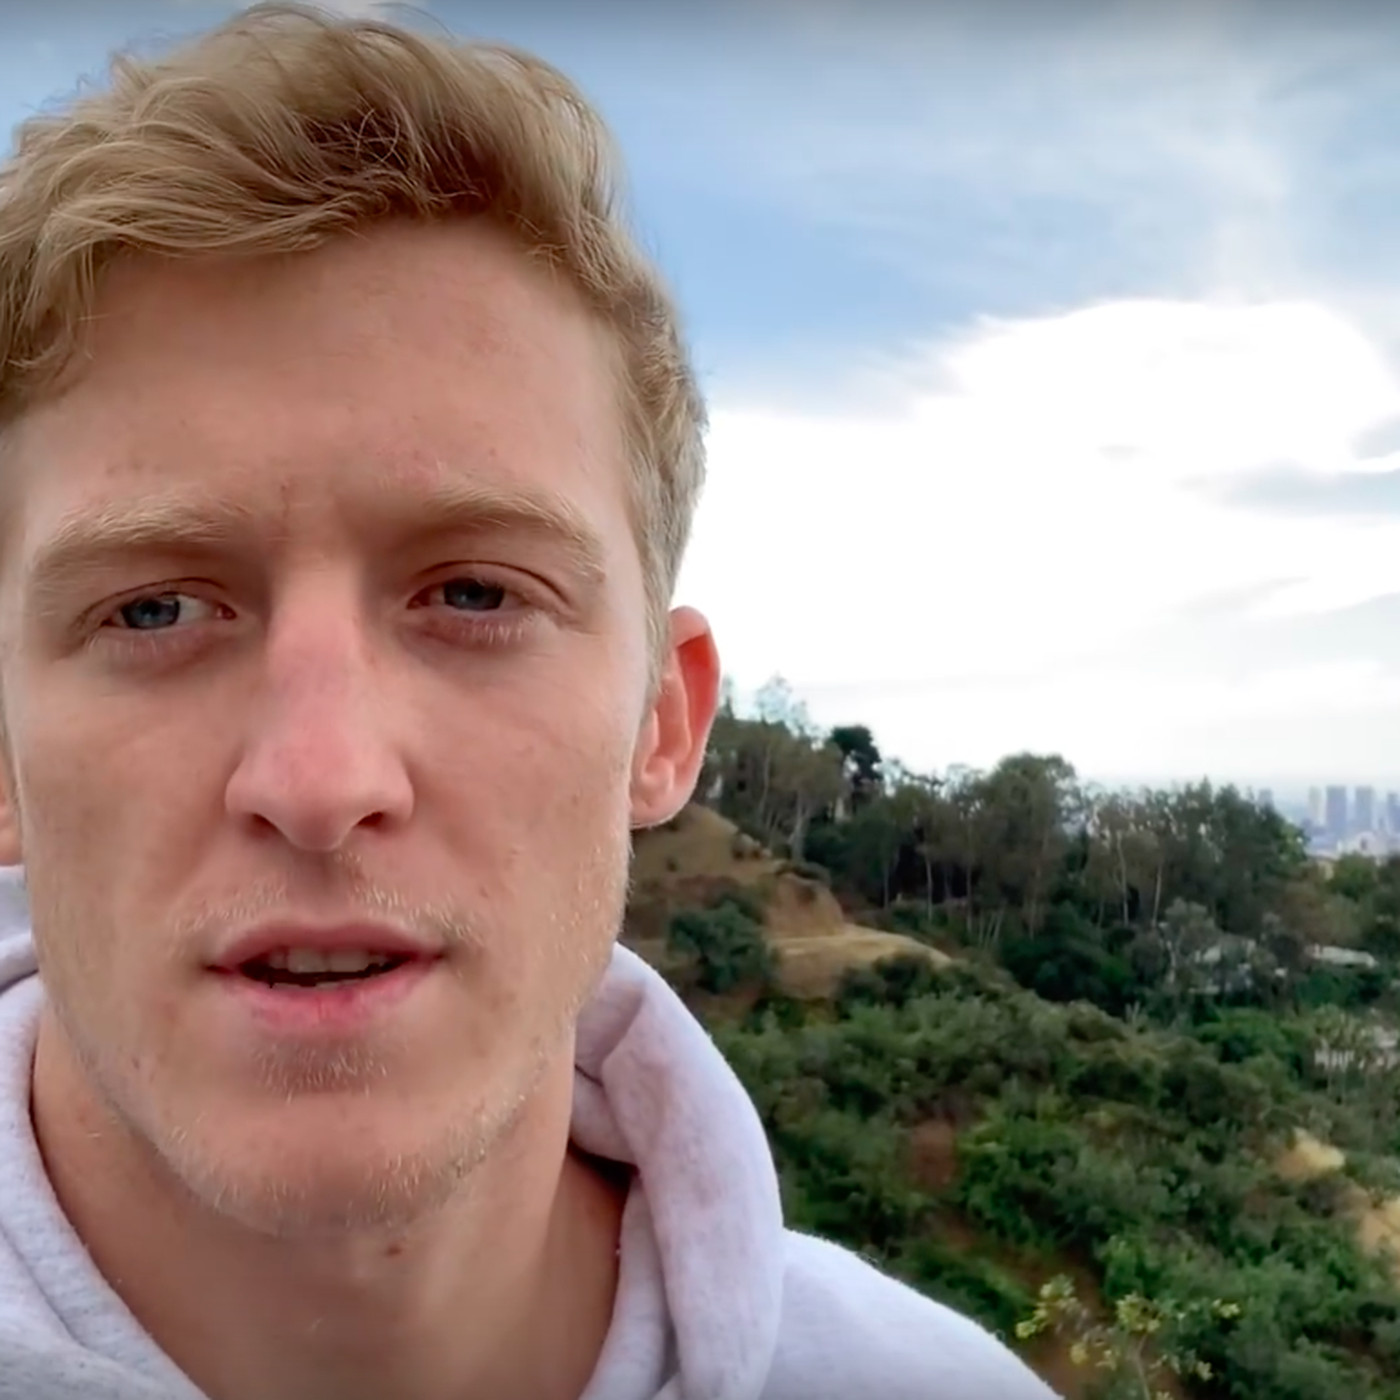 The fight between Fortnite star Tfue and Faze is only